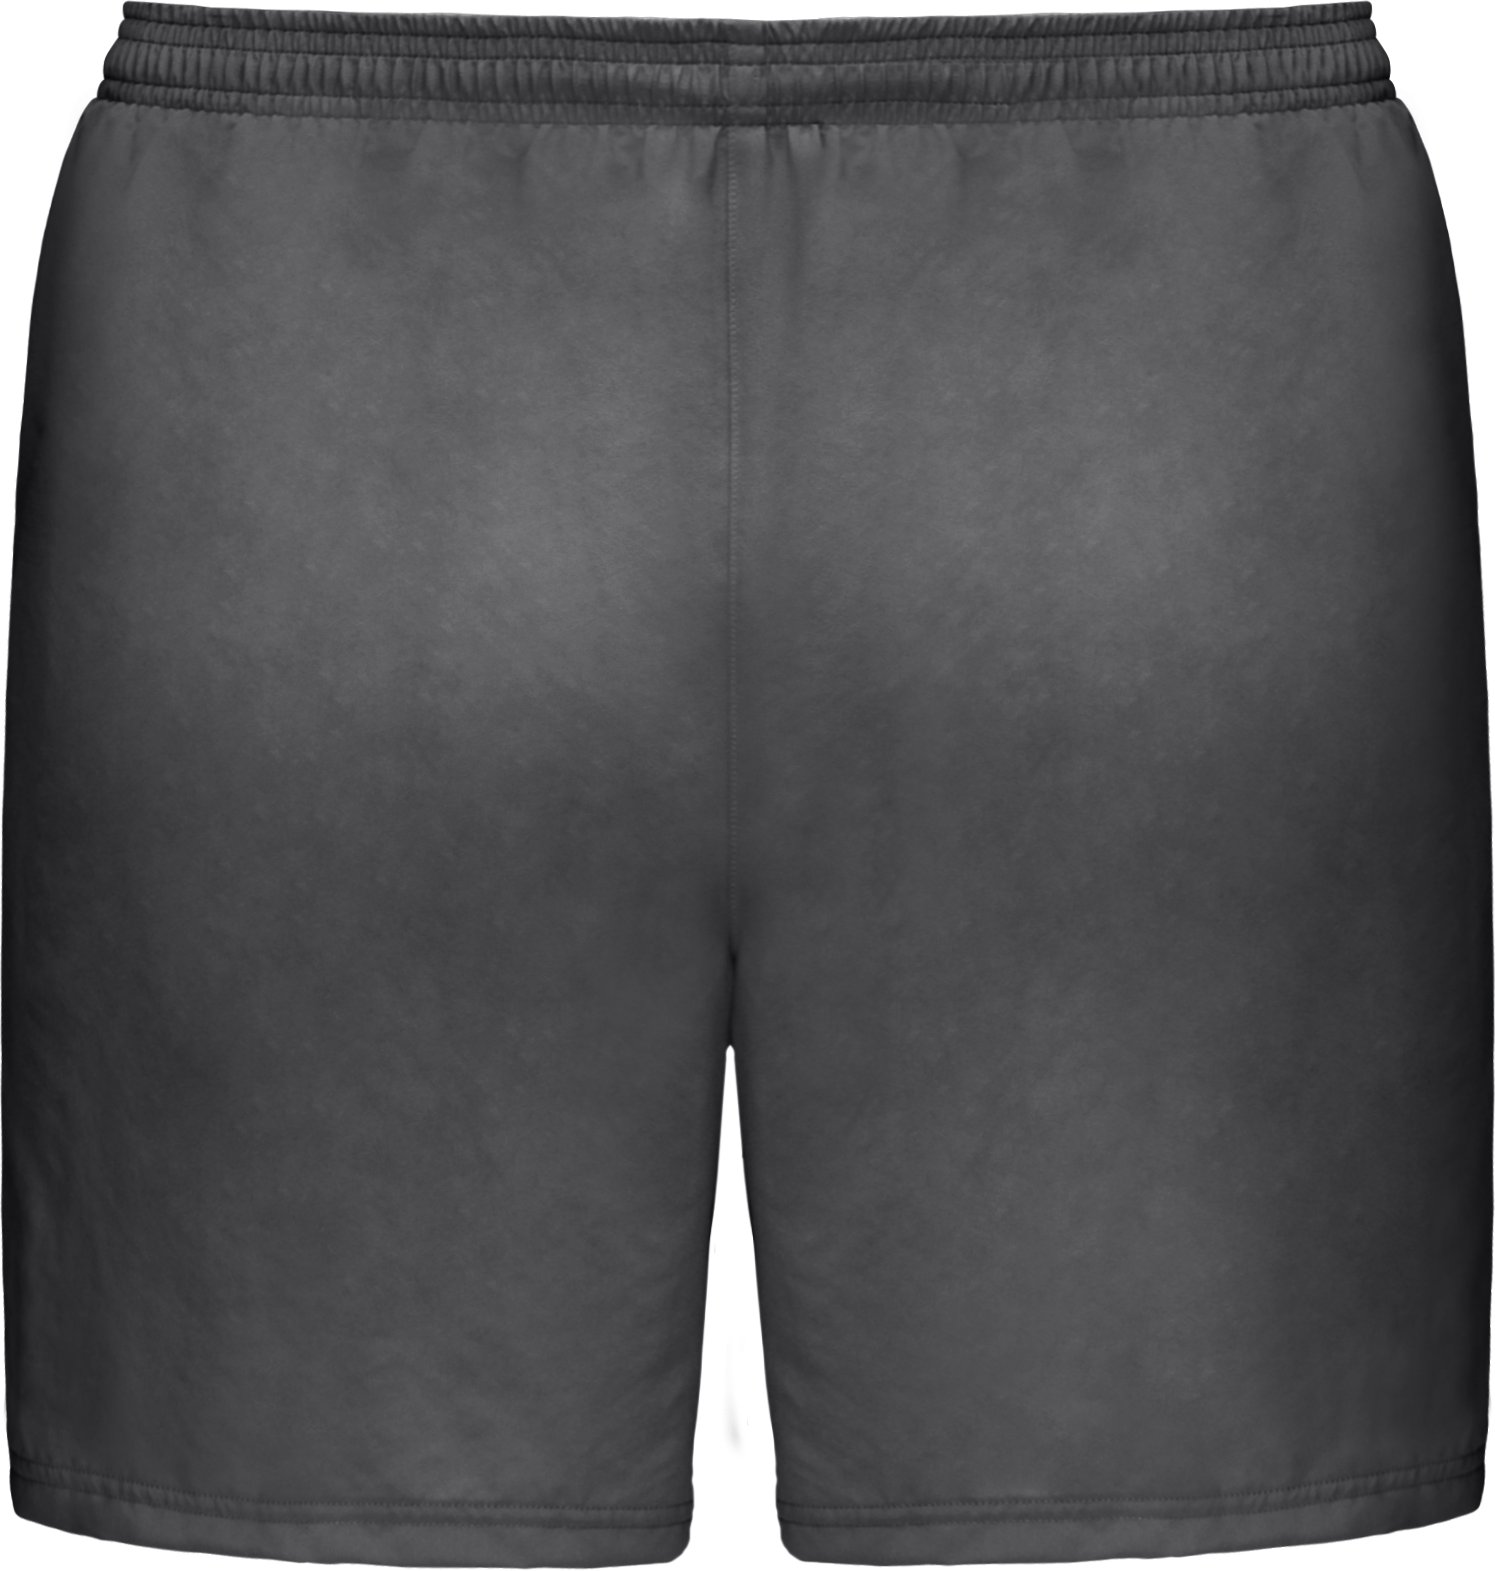 "Men's 7"" Escape II Shorts, Graphite"